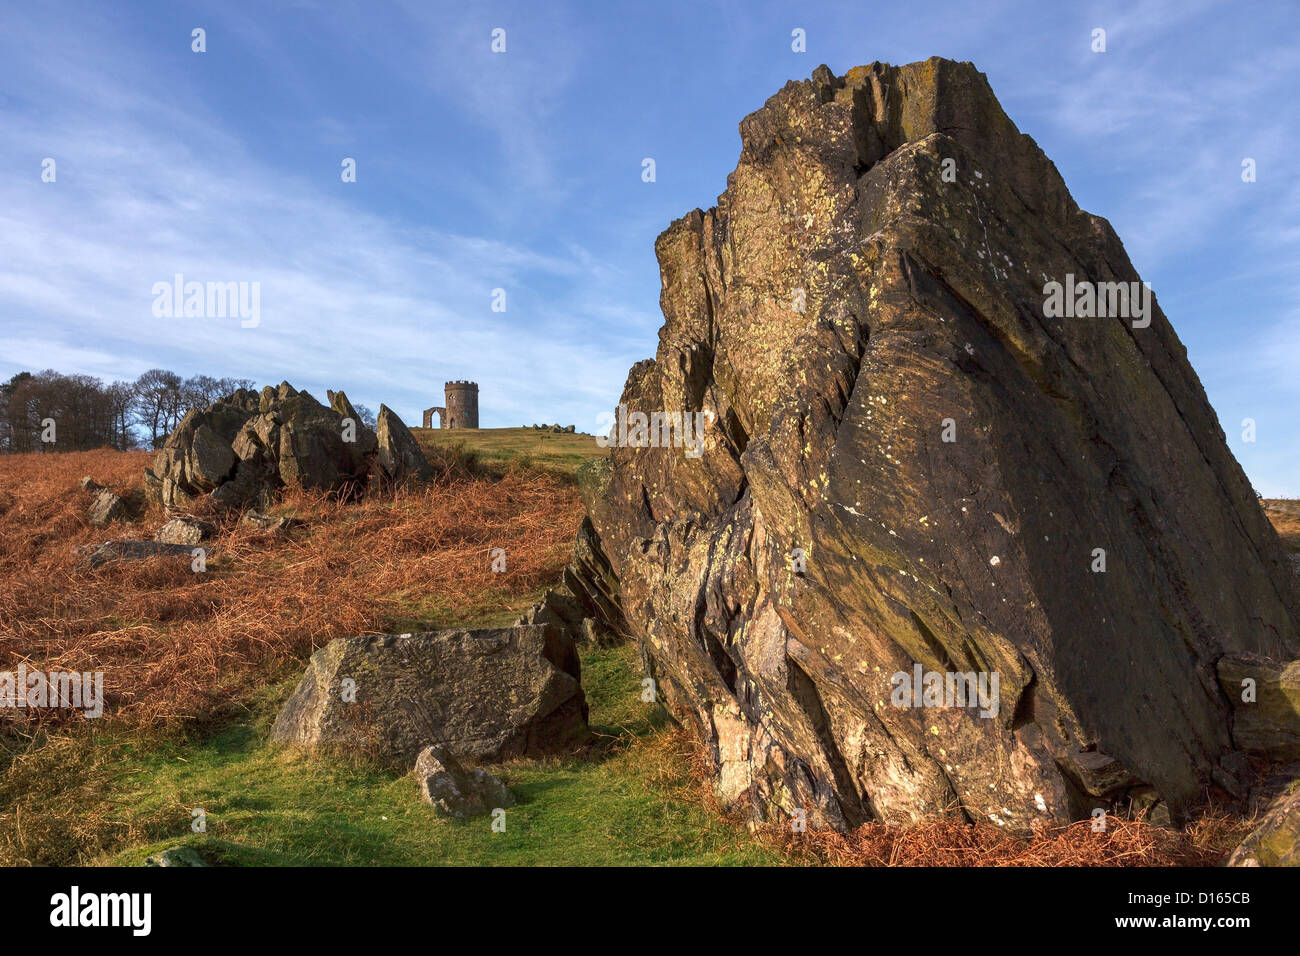 Ancient precambrian rocks and 'Old John' Folly in Bradgate Park, Leicestershire,England, UK - Stock Image